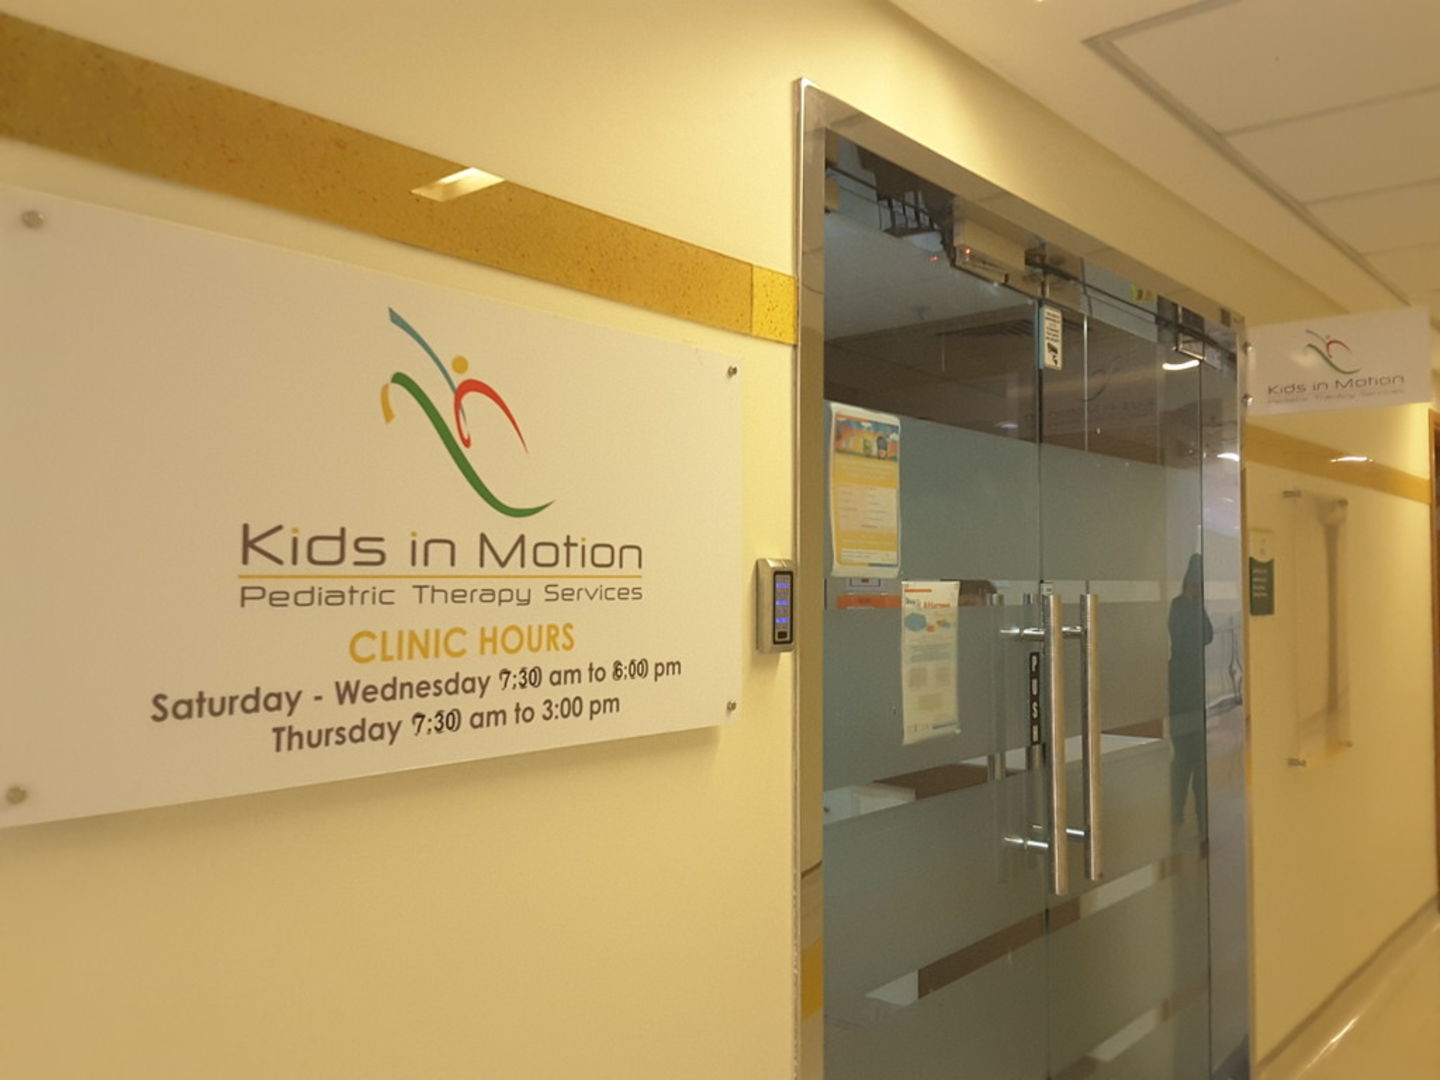 HiDubai-business-kids-in-motion-therapy-services-beauty-wellness-health-specialty-clinics-dubai-healthcare-city-umm-hurair-2-dubai-2